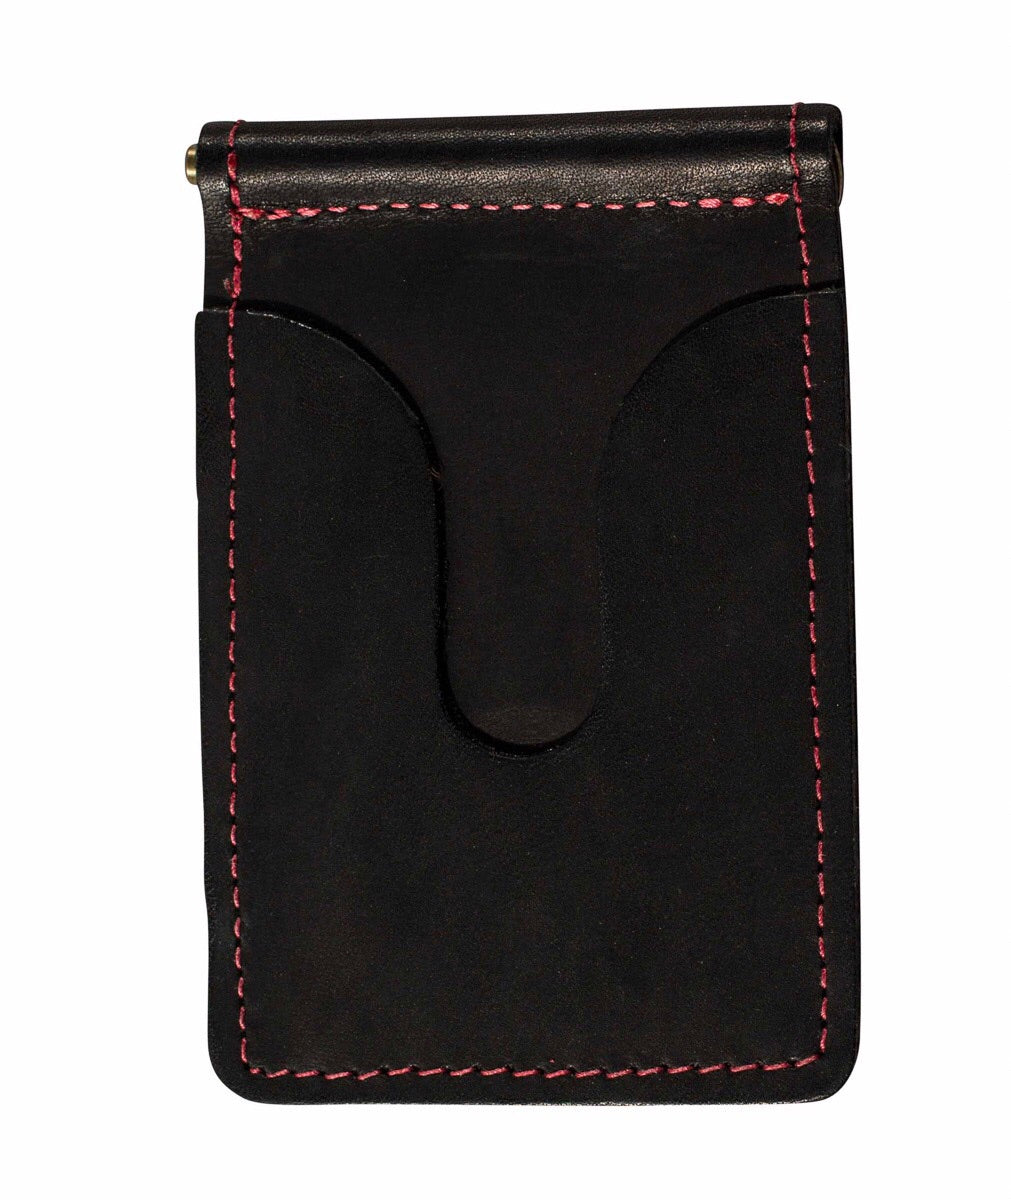 BLACK LEATHER MONEY CLIP WITH RED STITCHING